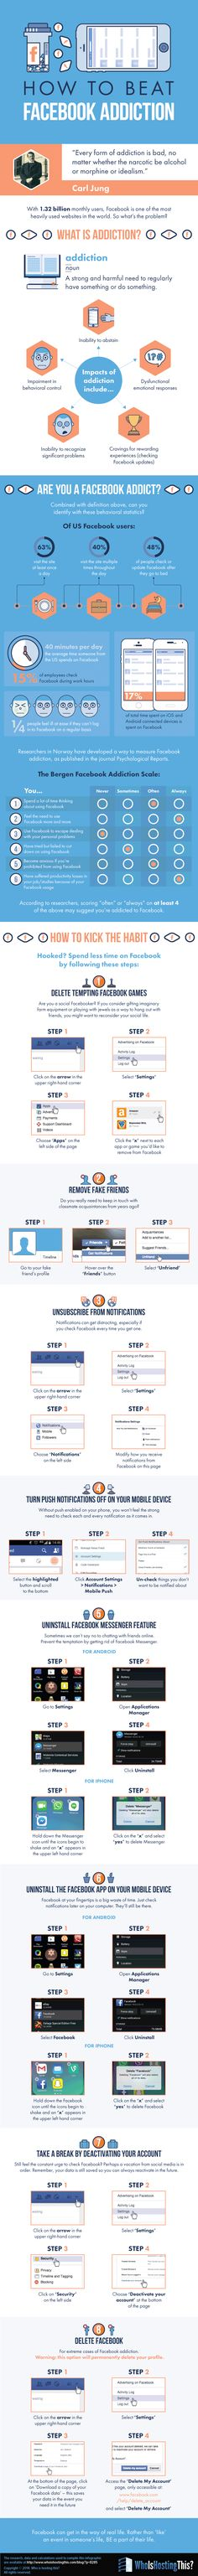 Do you – or someone you know – suffer from Facebook addiction? It's time to take control! Repin this infographic to remember the tips.